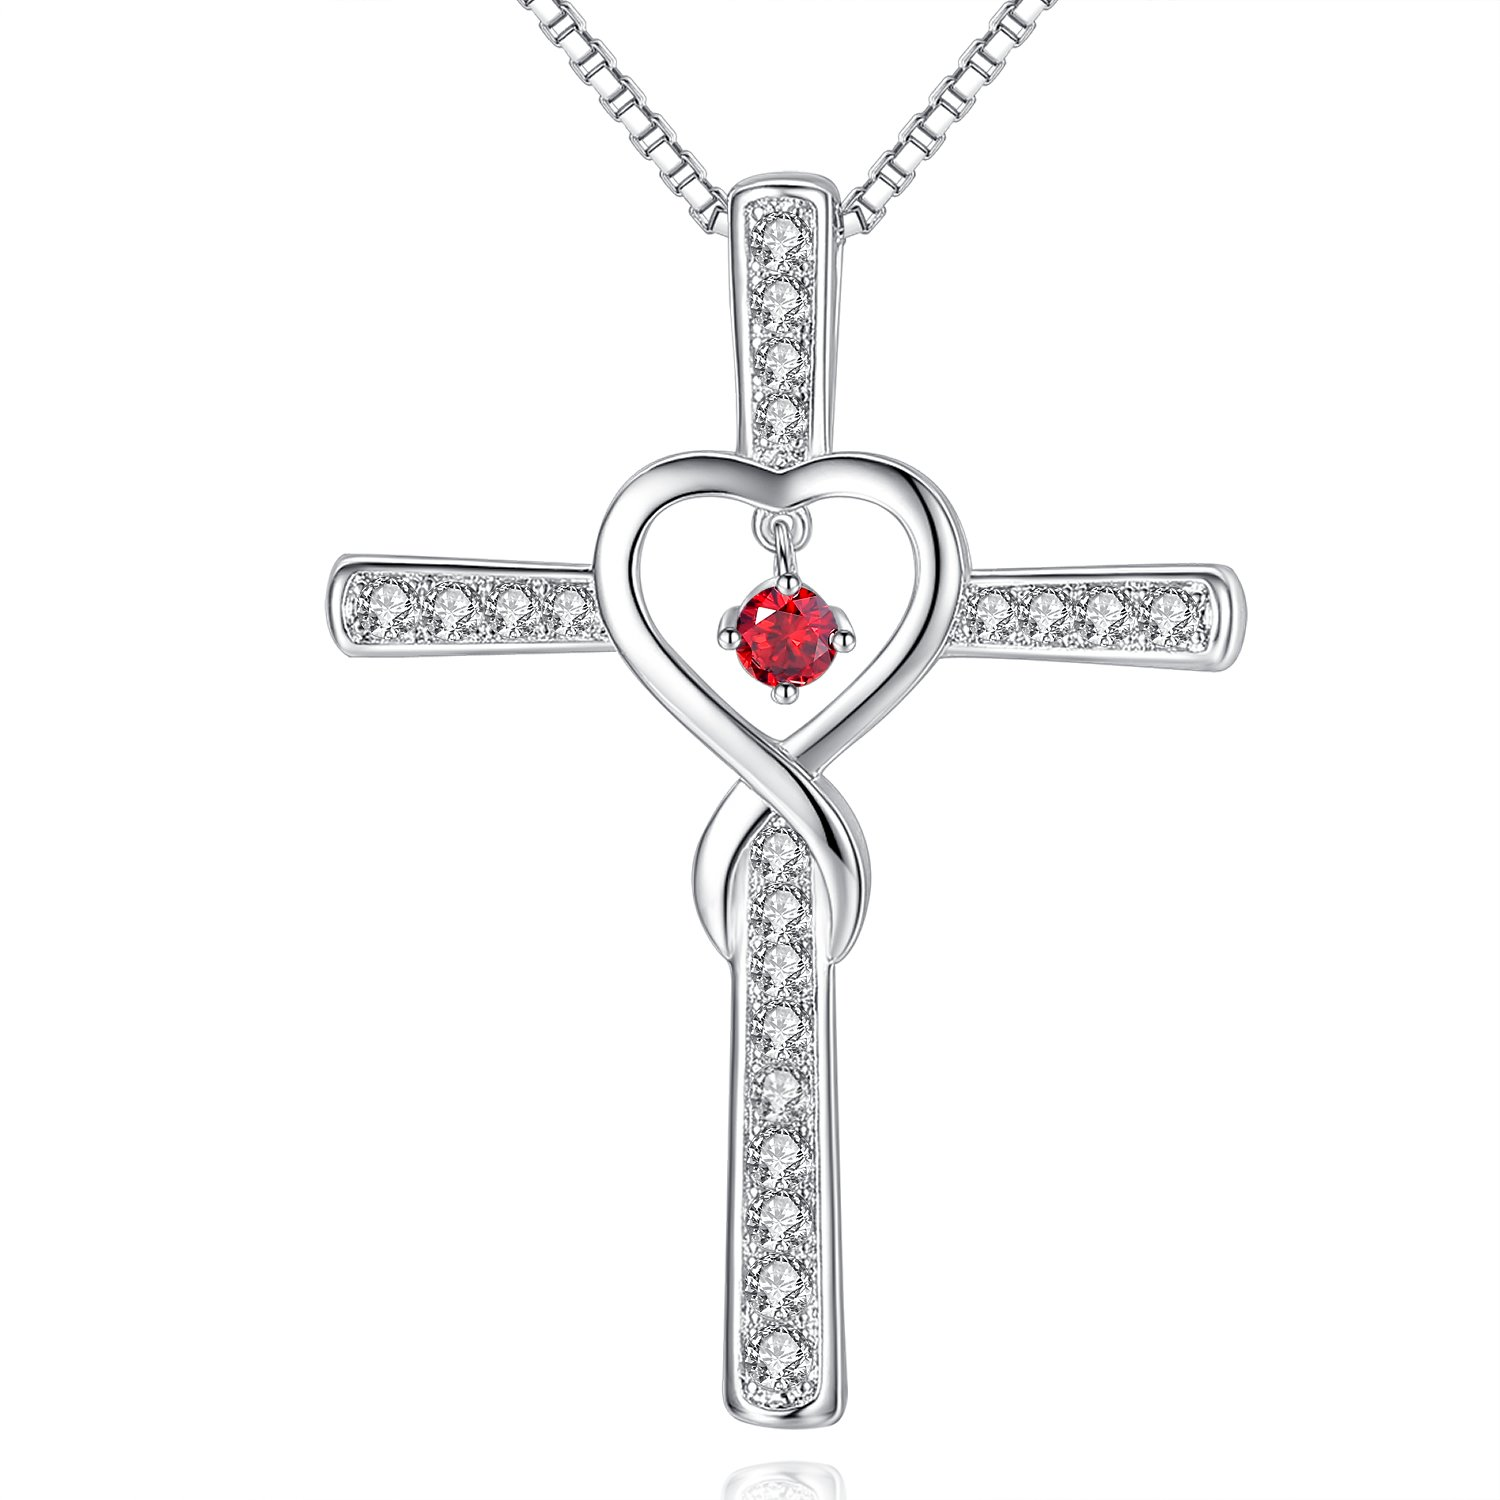 Infinity Love God Cross CZ Pendant Necklace with Birthstone, Birthday Gifts, Jewelry for Women, Girls Birthday Necklace Milamiya